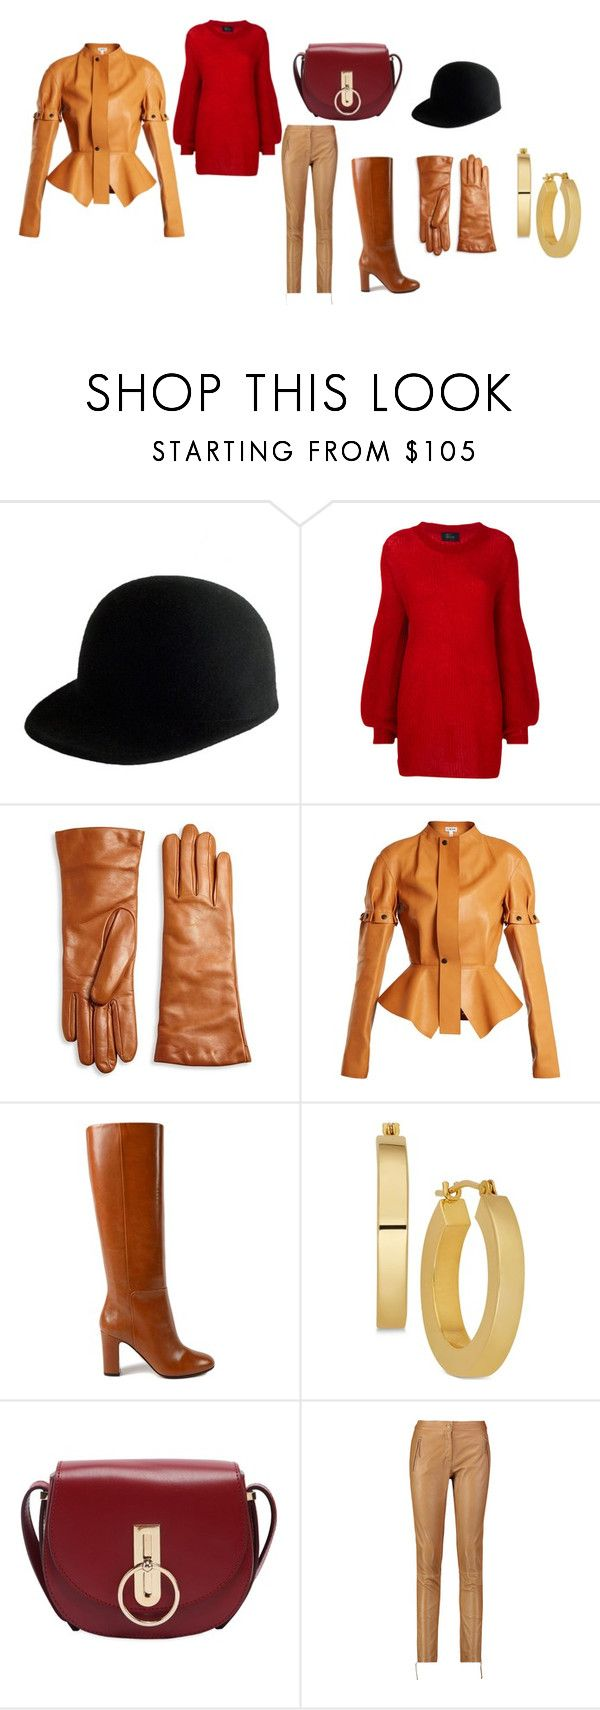 """Untitled #32"" by dadulla on Polyvore featuring Janessa Leone, Lost & Found, Saks Fifth Avenue Collection, Loewe, Aquazzura, Nina Ricci and Roberto Cavalli"